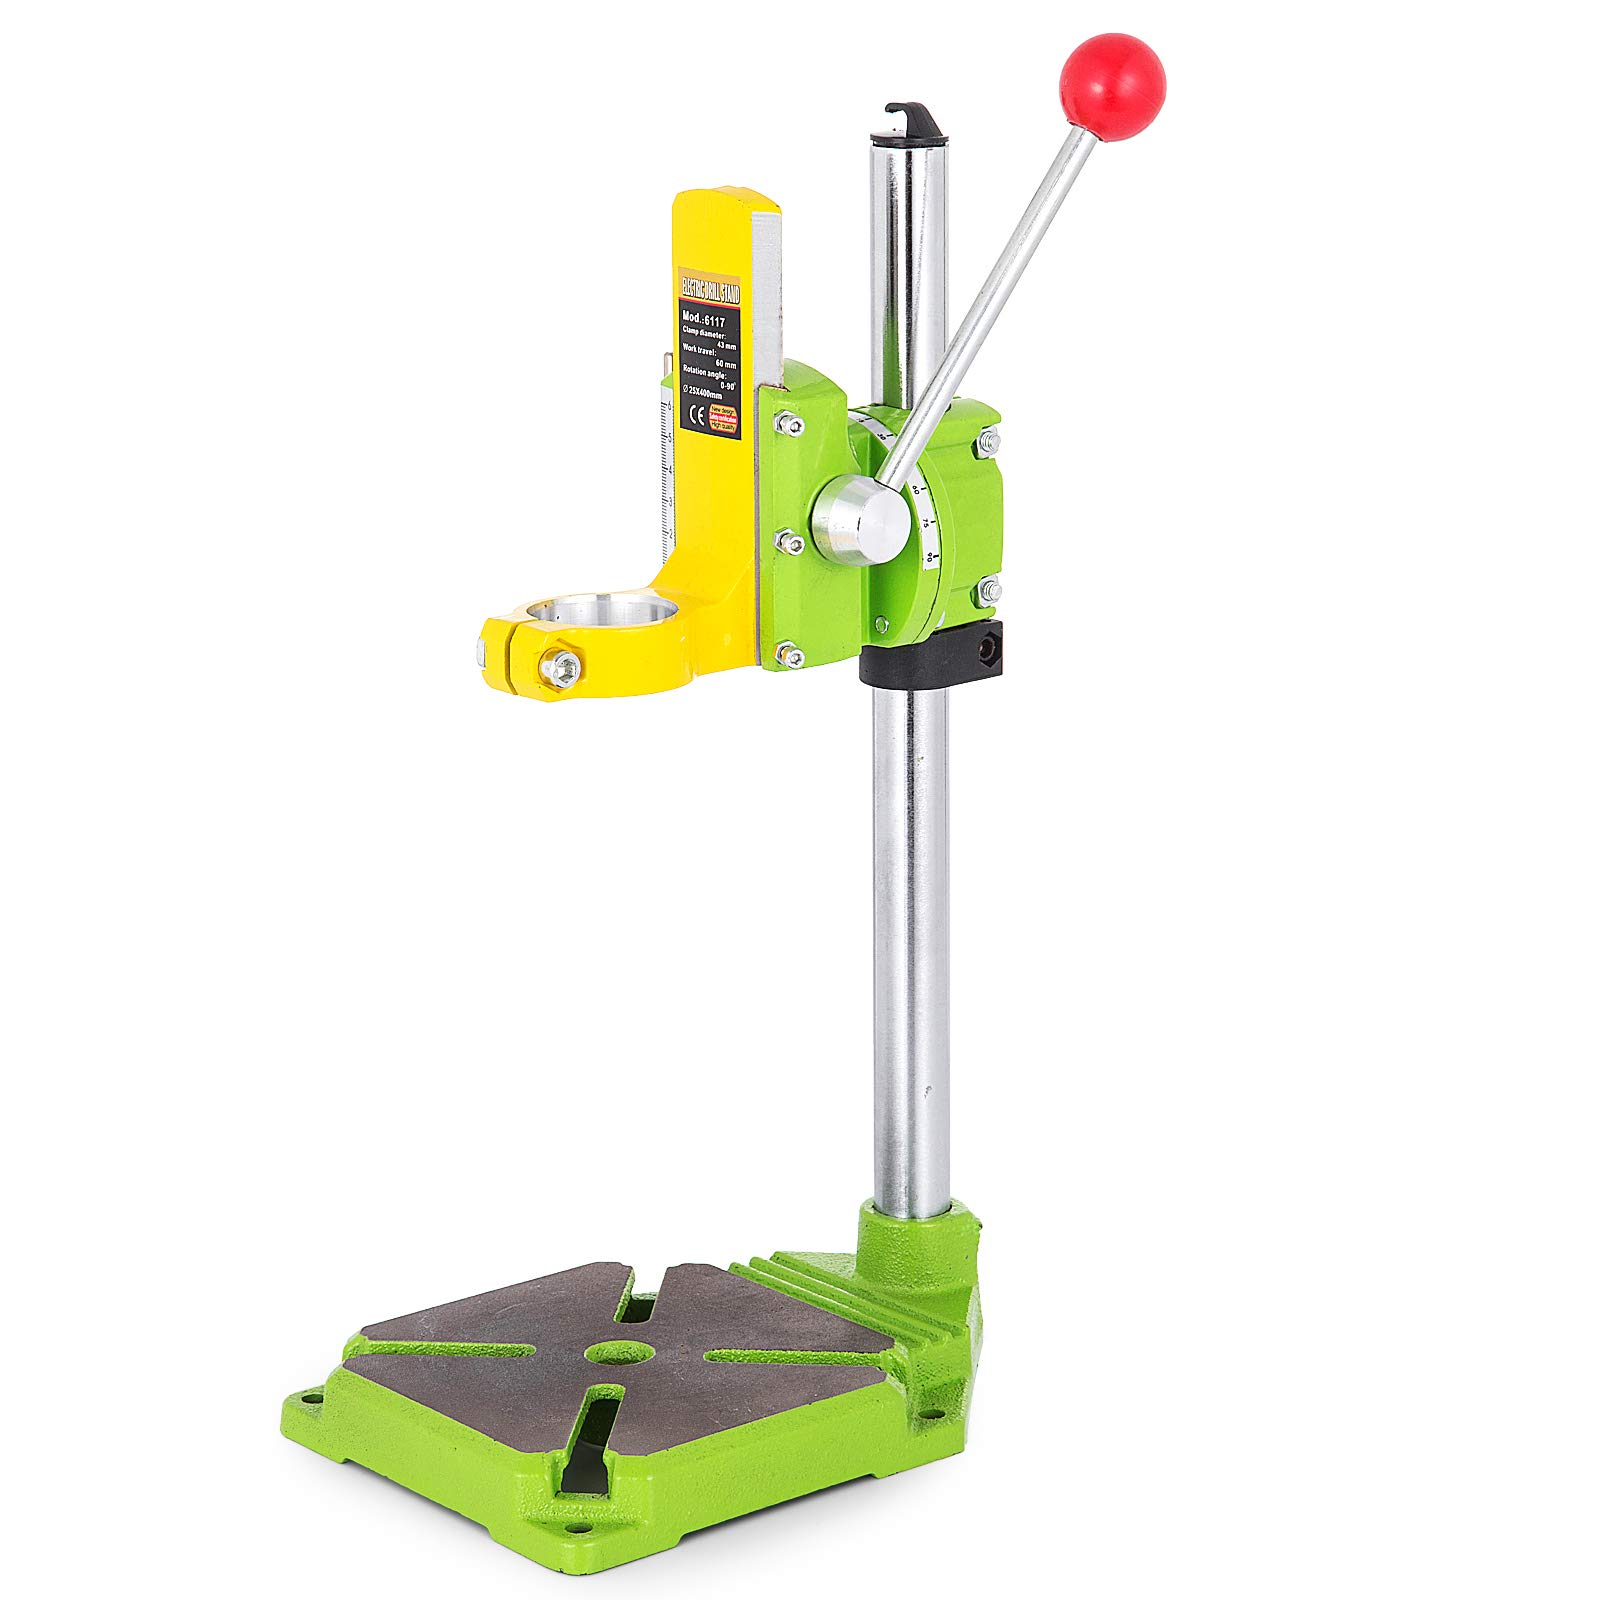 Happybuy Drill Press Stand 90 Degrees Rotary Drill Stand Holder 60mm Work Travel Repair Tool Clamp